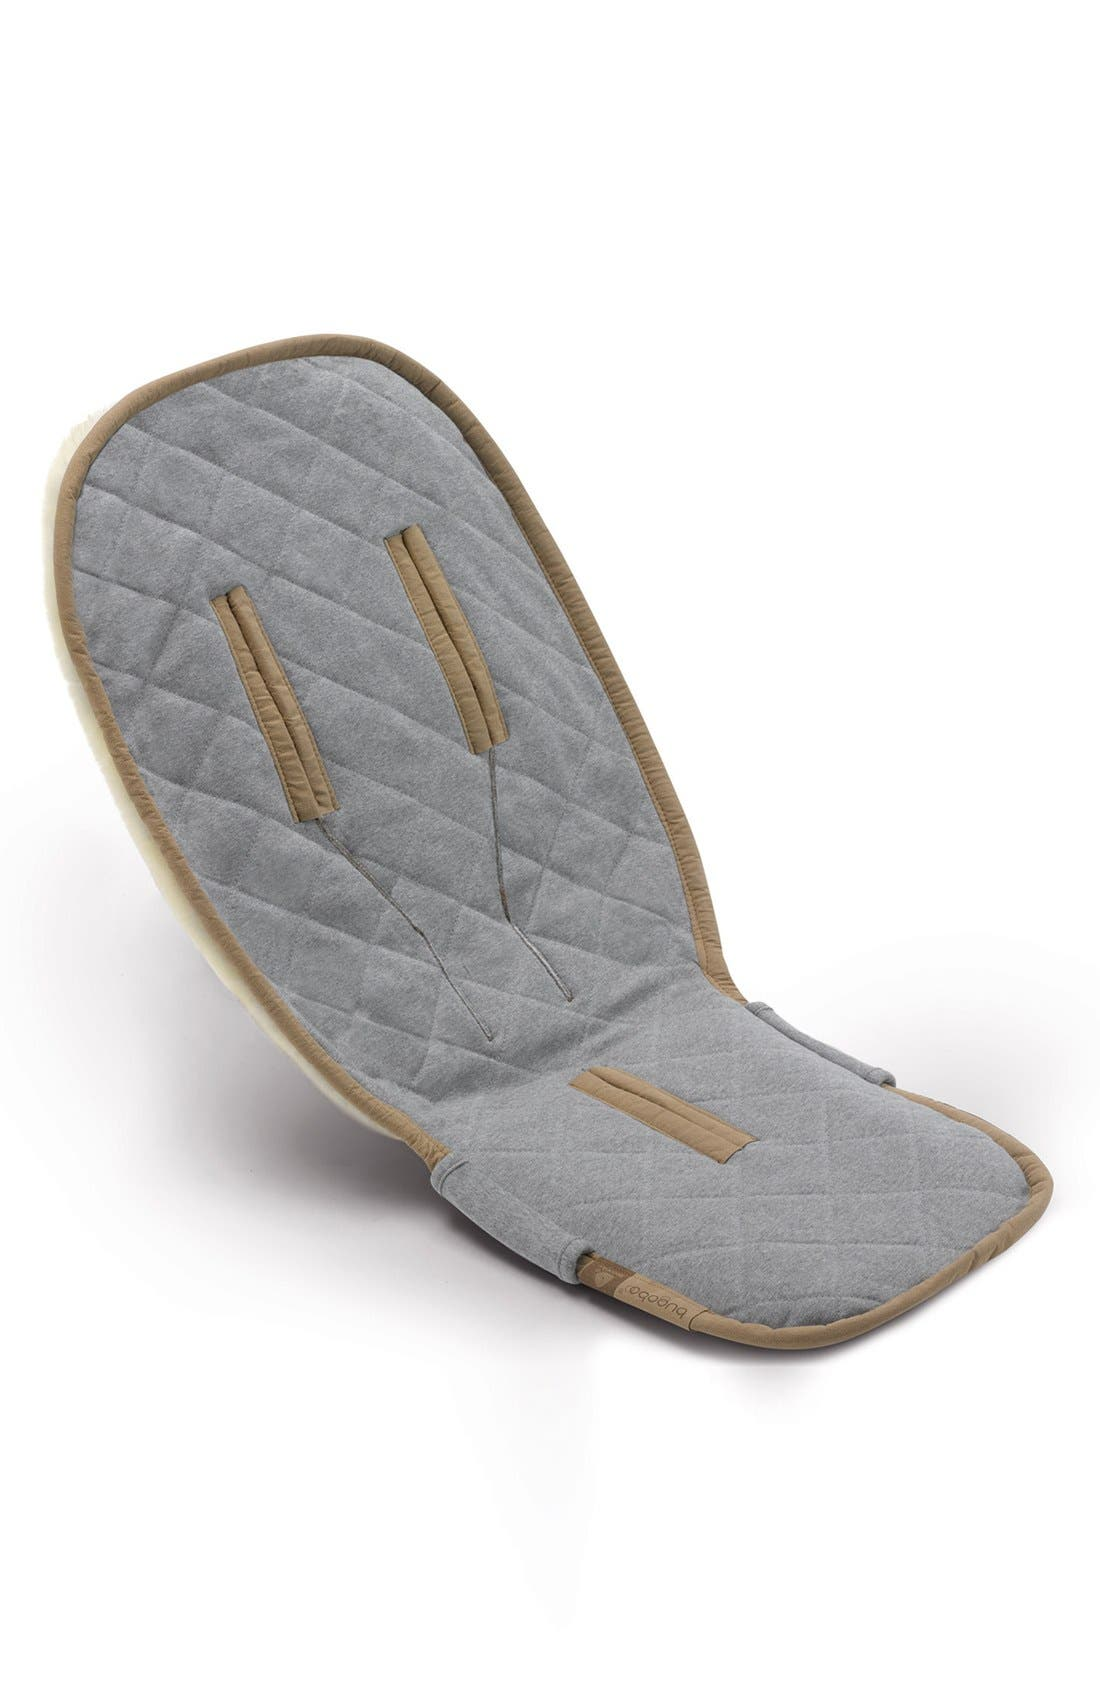 'Woolmark' Reversible Seat Liner,                             Main thumbnail 1, color,                             No Color